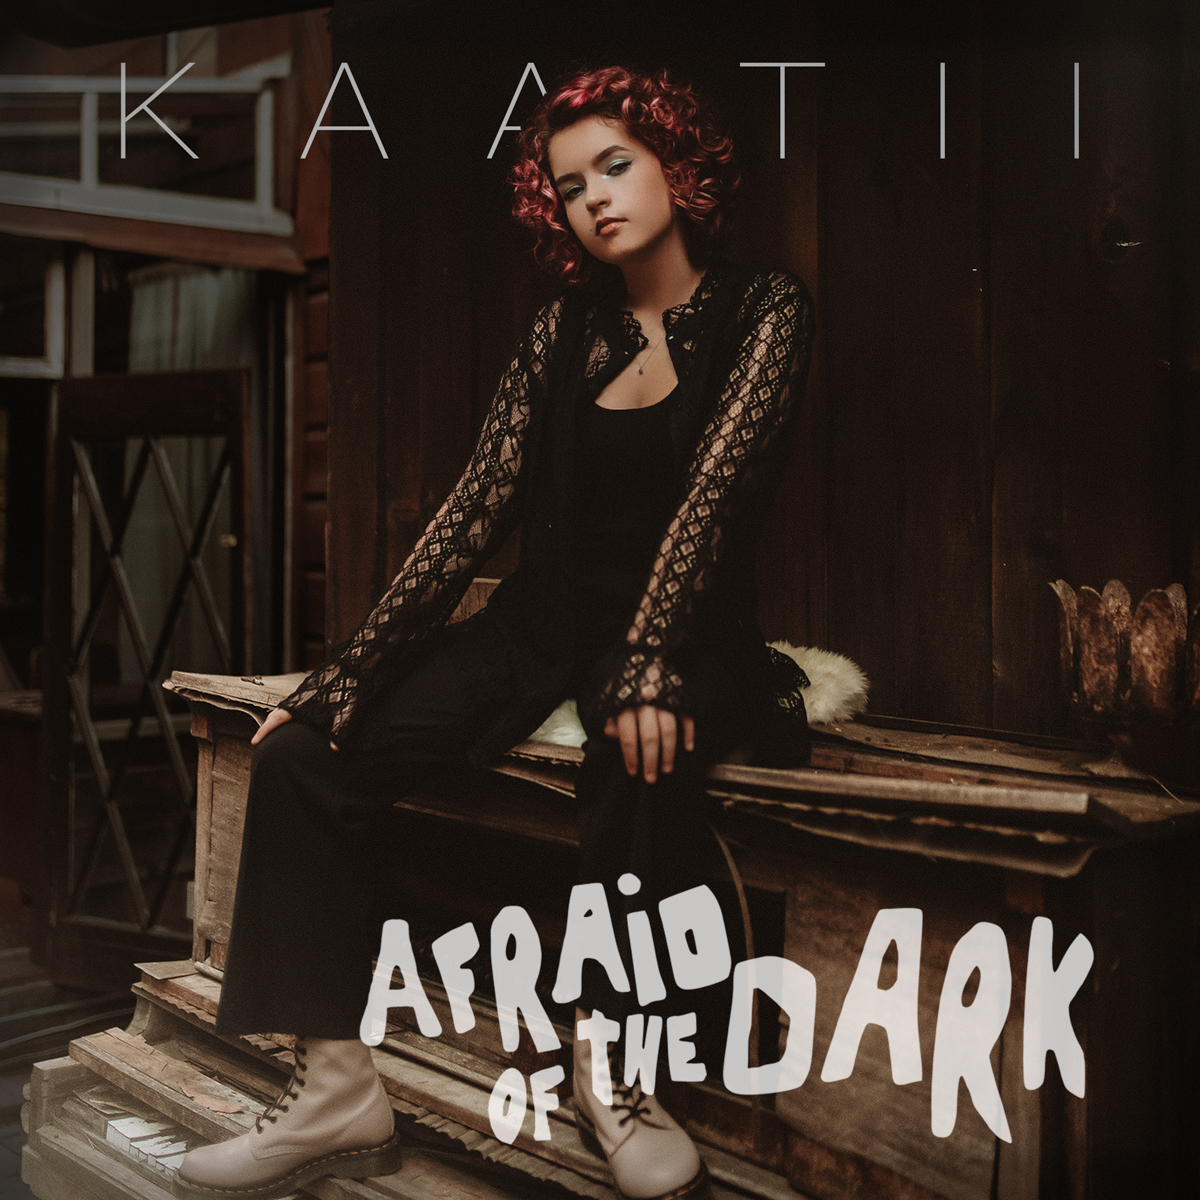 Exclusive Stream Kaatii And Kara Connolly S New Curated Afraid Of The Dark Spotify Halloween Playlist Aesthetic Magazine Album Reviews Concert Photography Interviews Contests